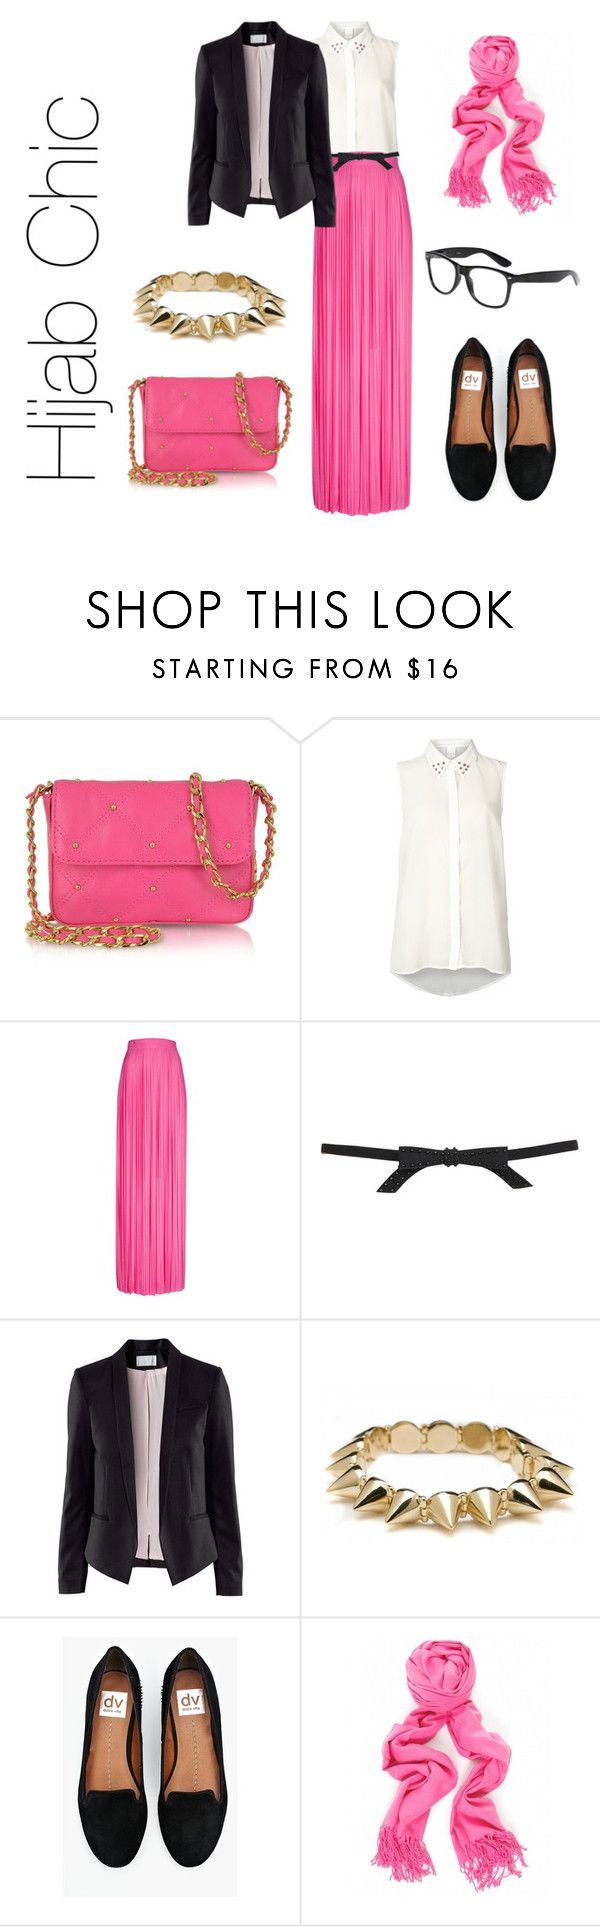 """""""Hijab Chic"""" by fashion4arab ❤ liked on Polyvore featuring Juicy Couture, VILA, Frankie Morello, Topshop, H&M and CC SKYE"""